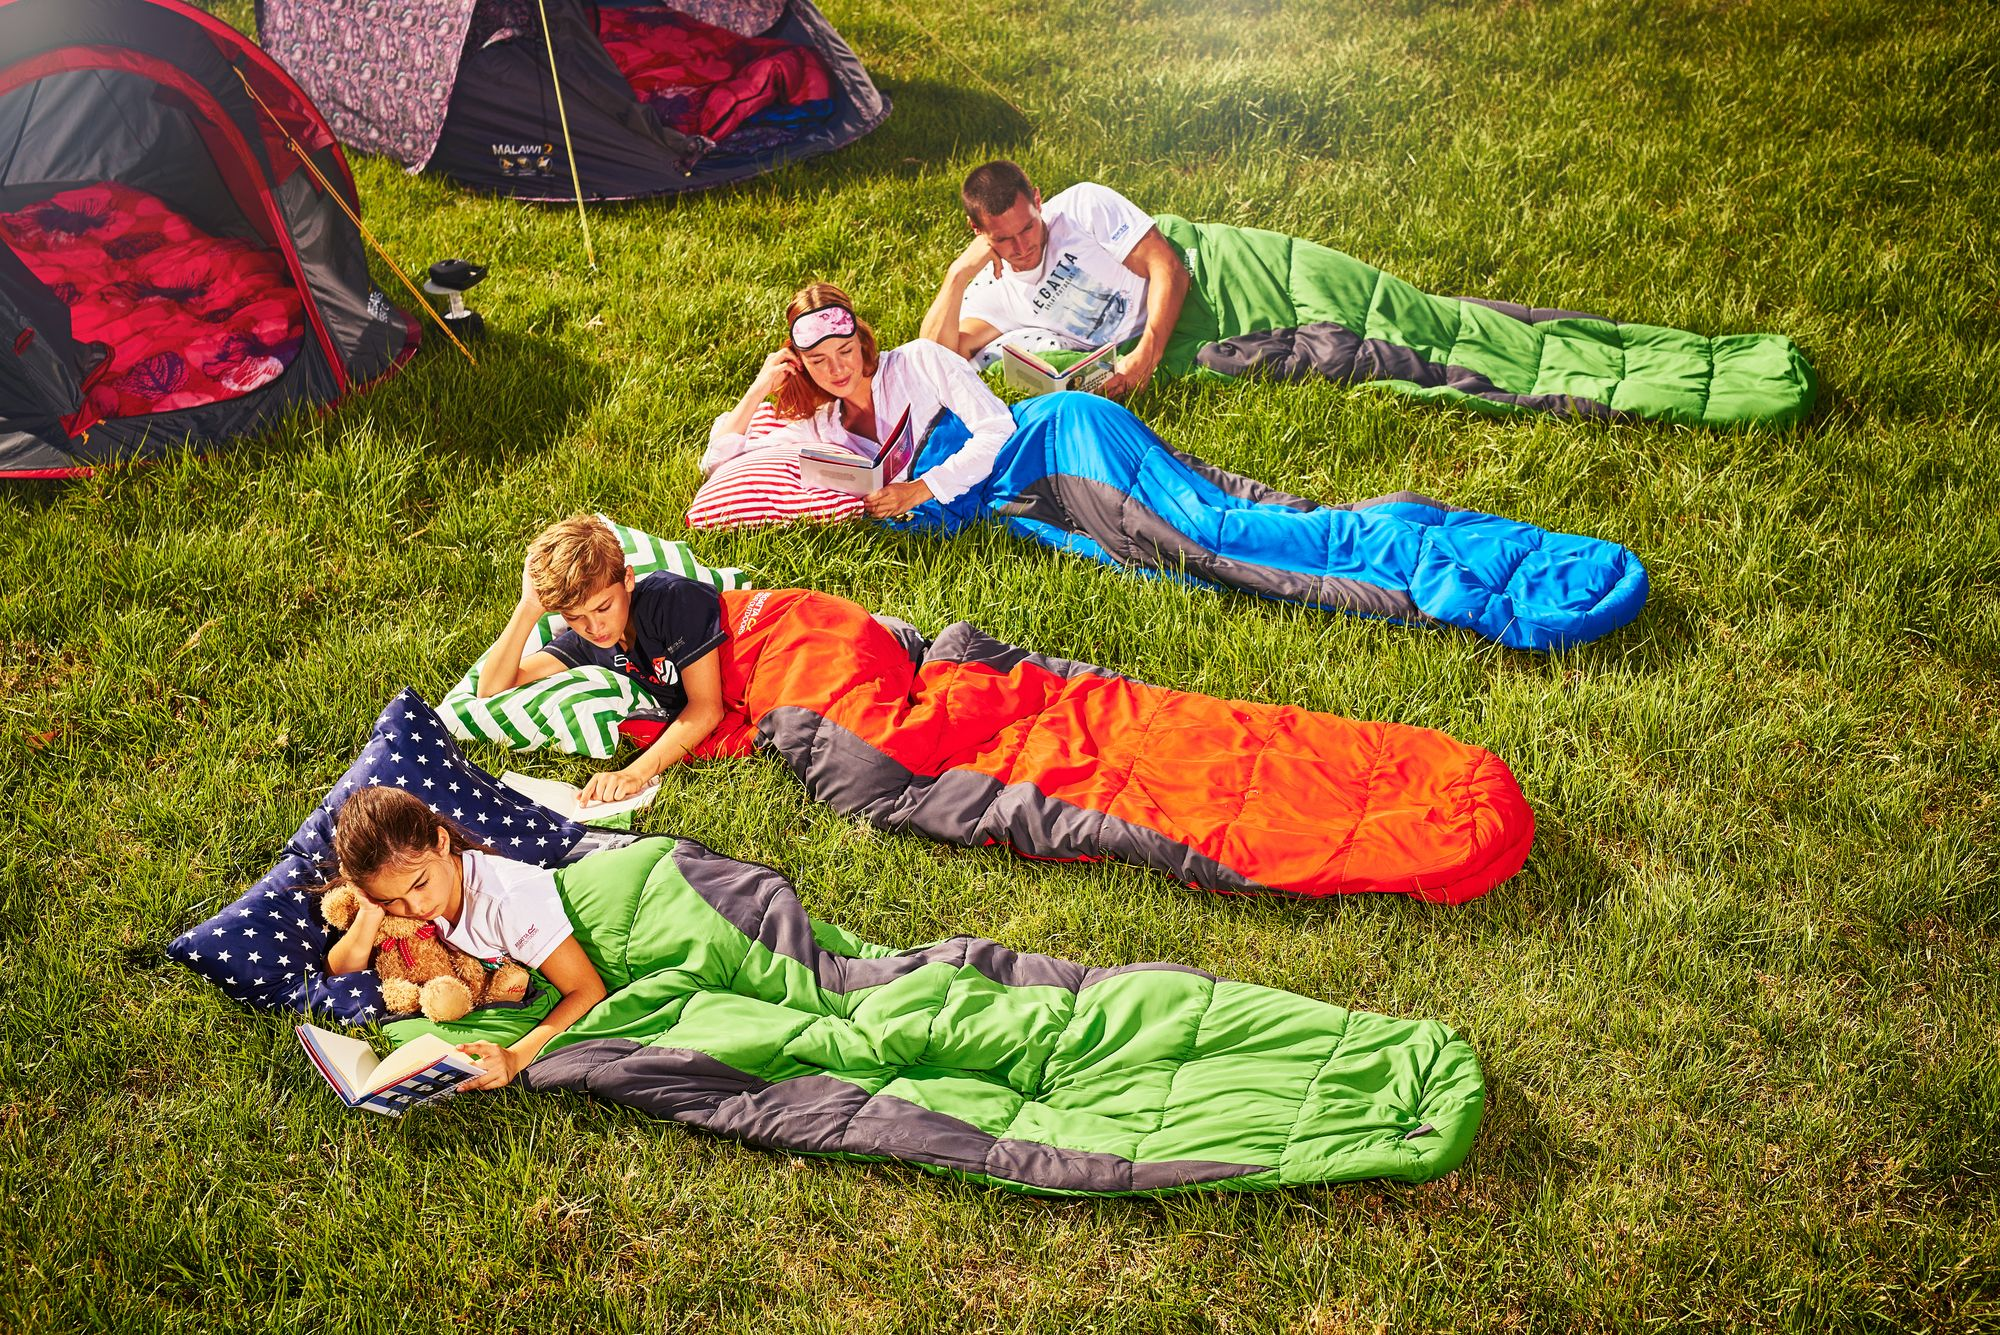 Family lay down on grass inside sleeping bags.